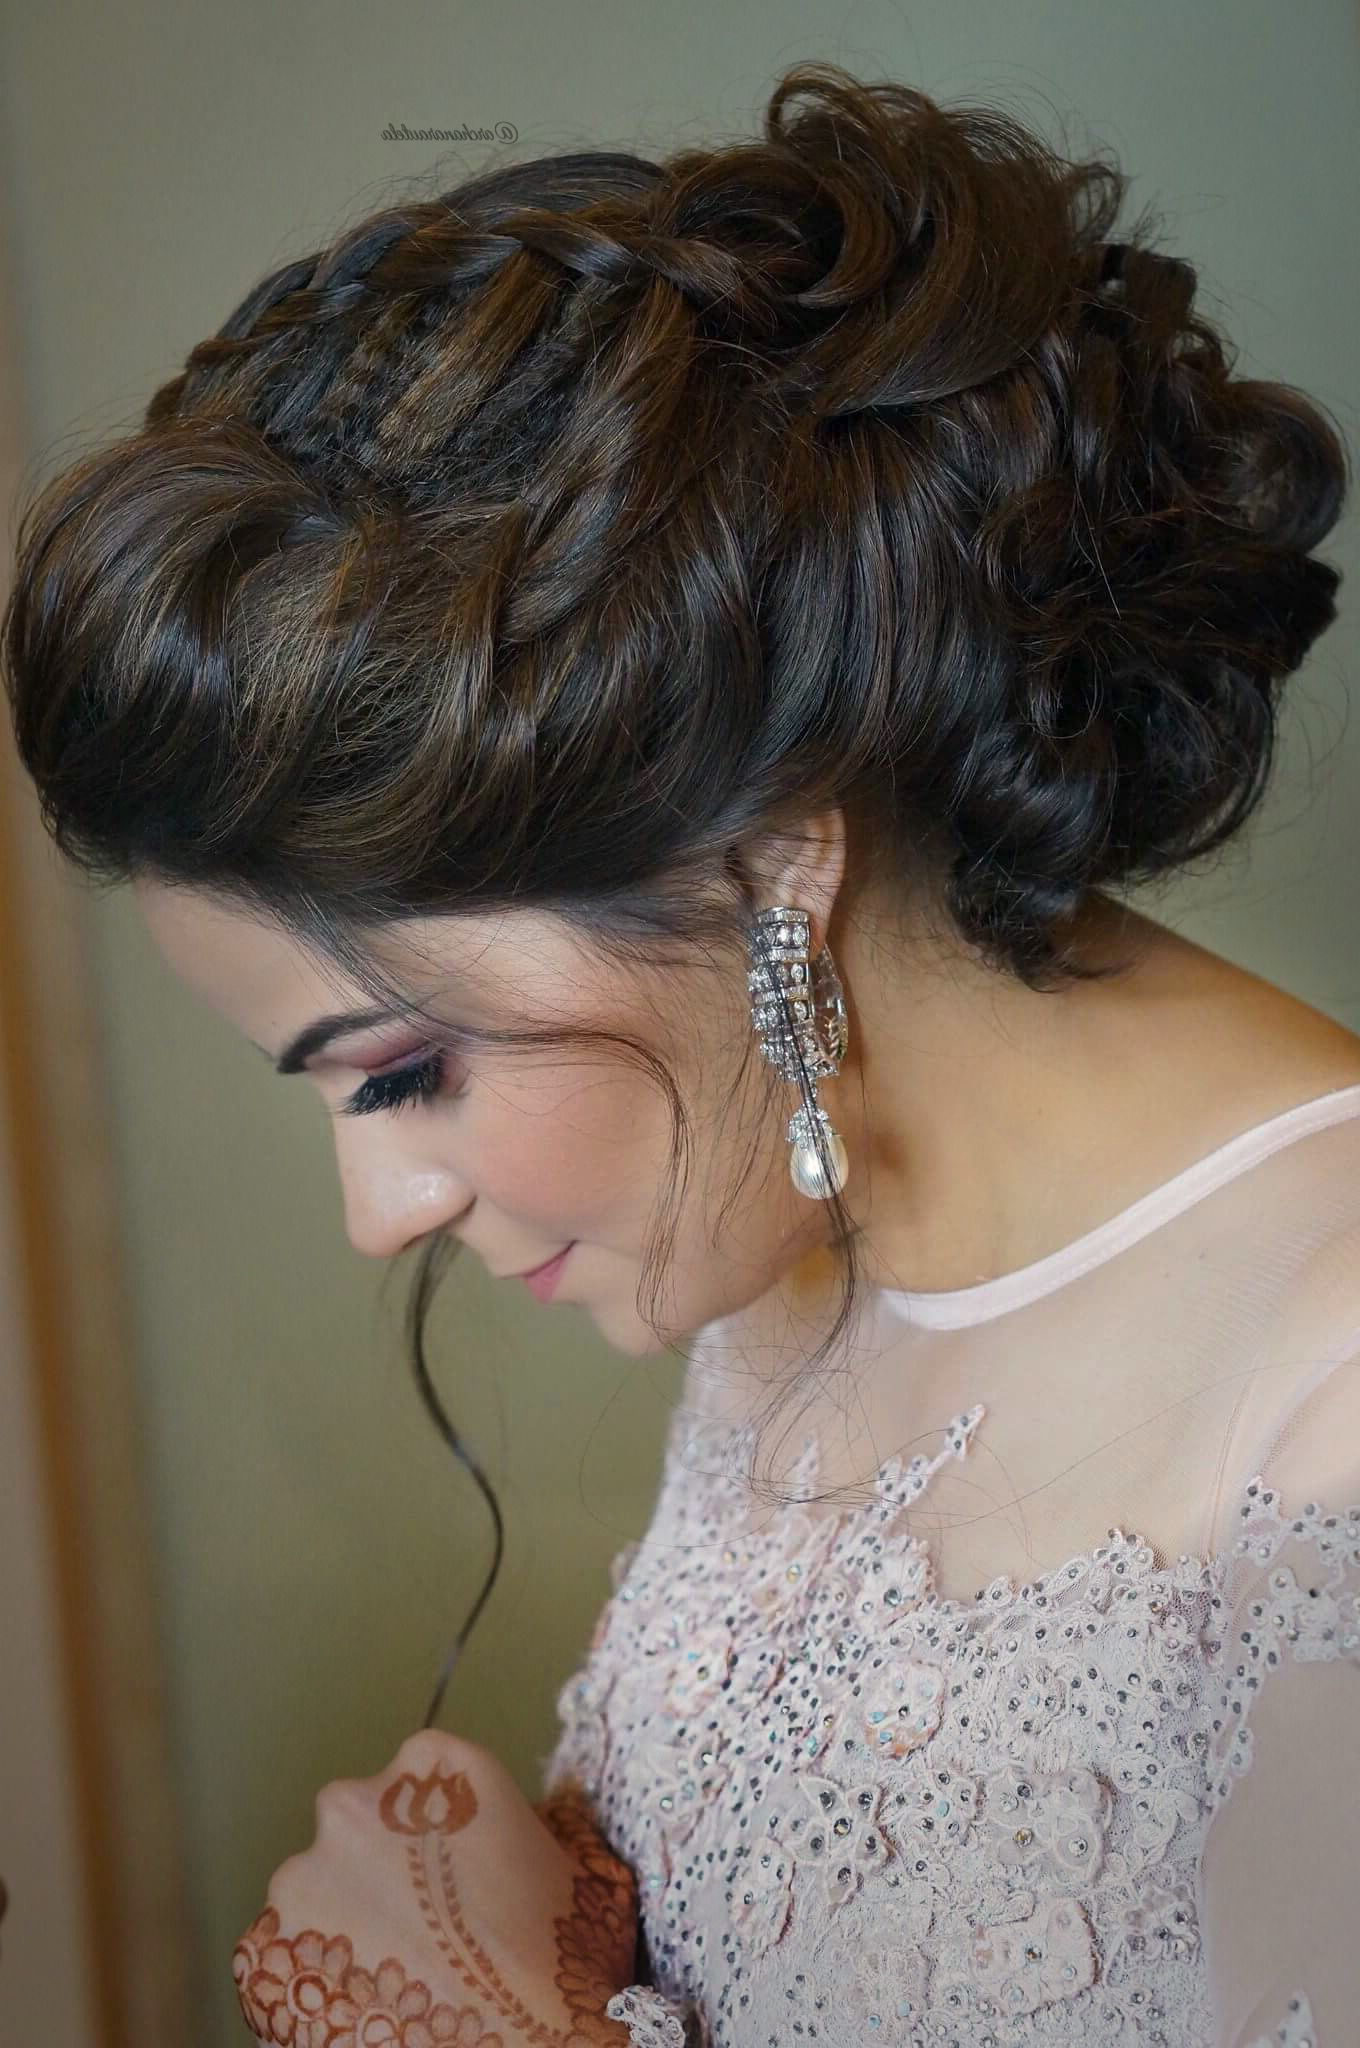 Nidhi👰🏼💍 Looking Gorgeous With Braided Messy Bun 💍💄 Hair Intended For Newest Bridal Mid Bun Hairstyles With A Bouffant (View 15 of 20)